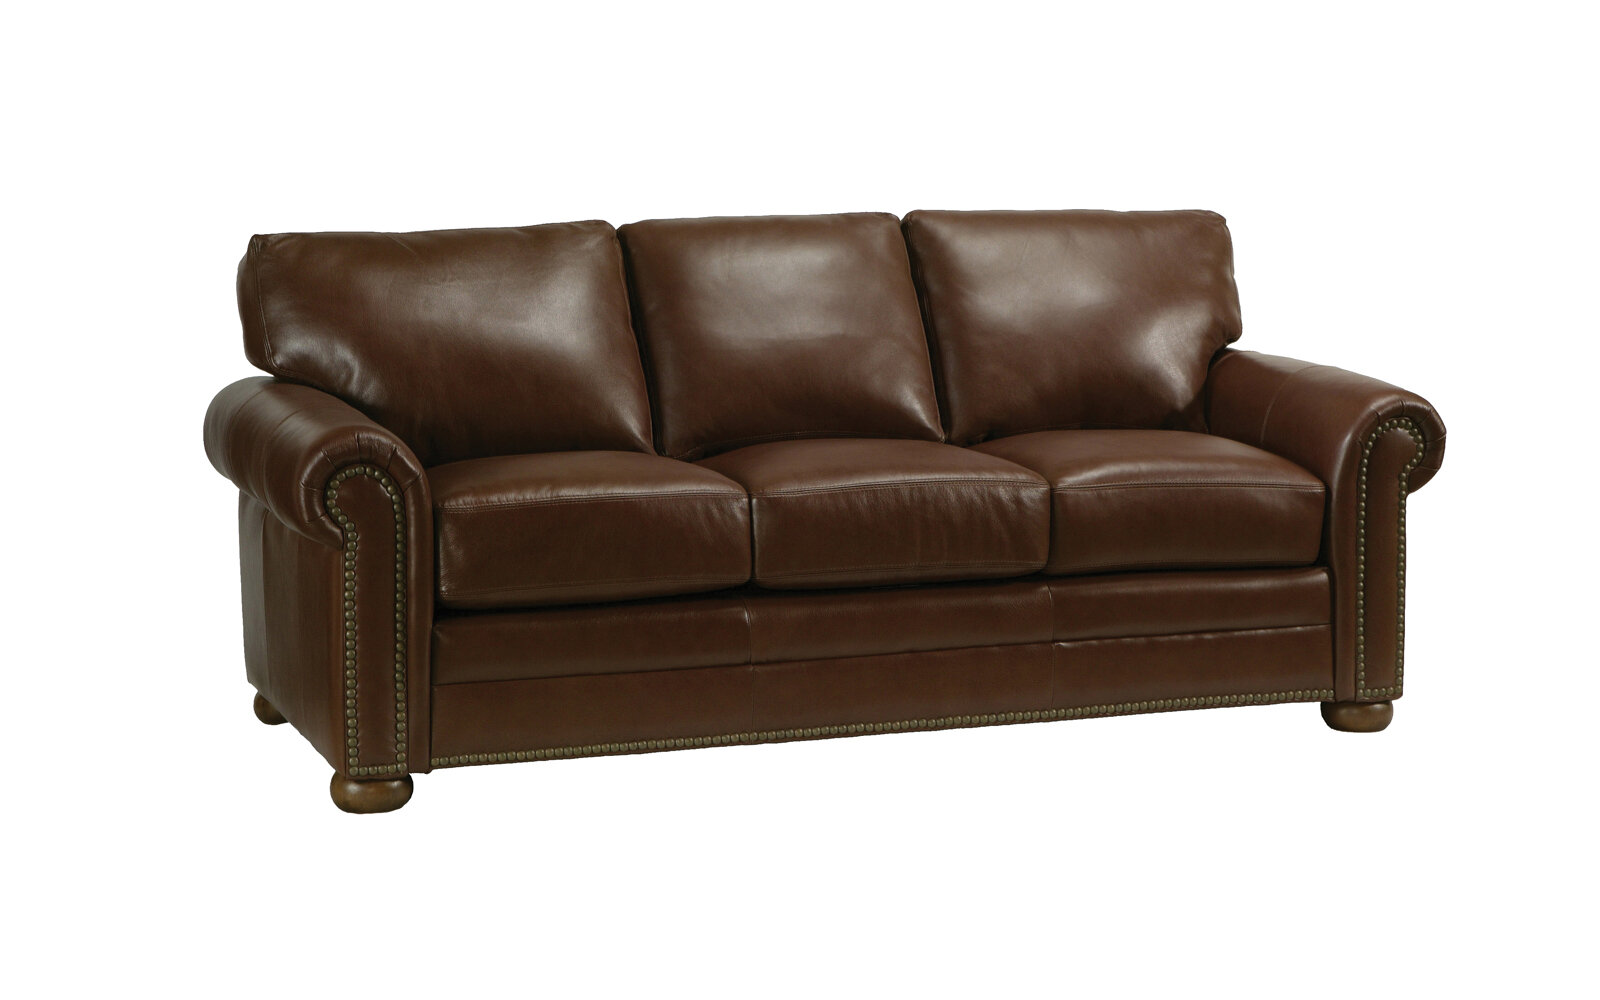 Omnia Leather Savannah Leather Sleeper Sofa U0026 Reviews | Wayfair